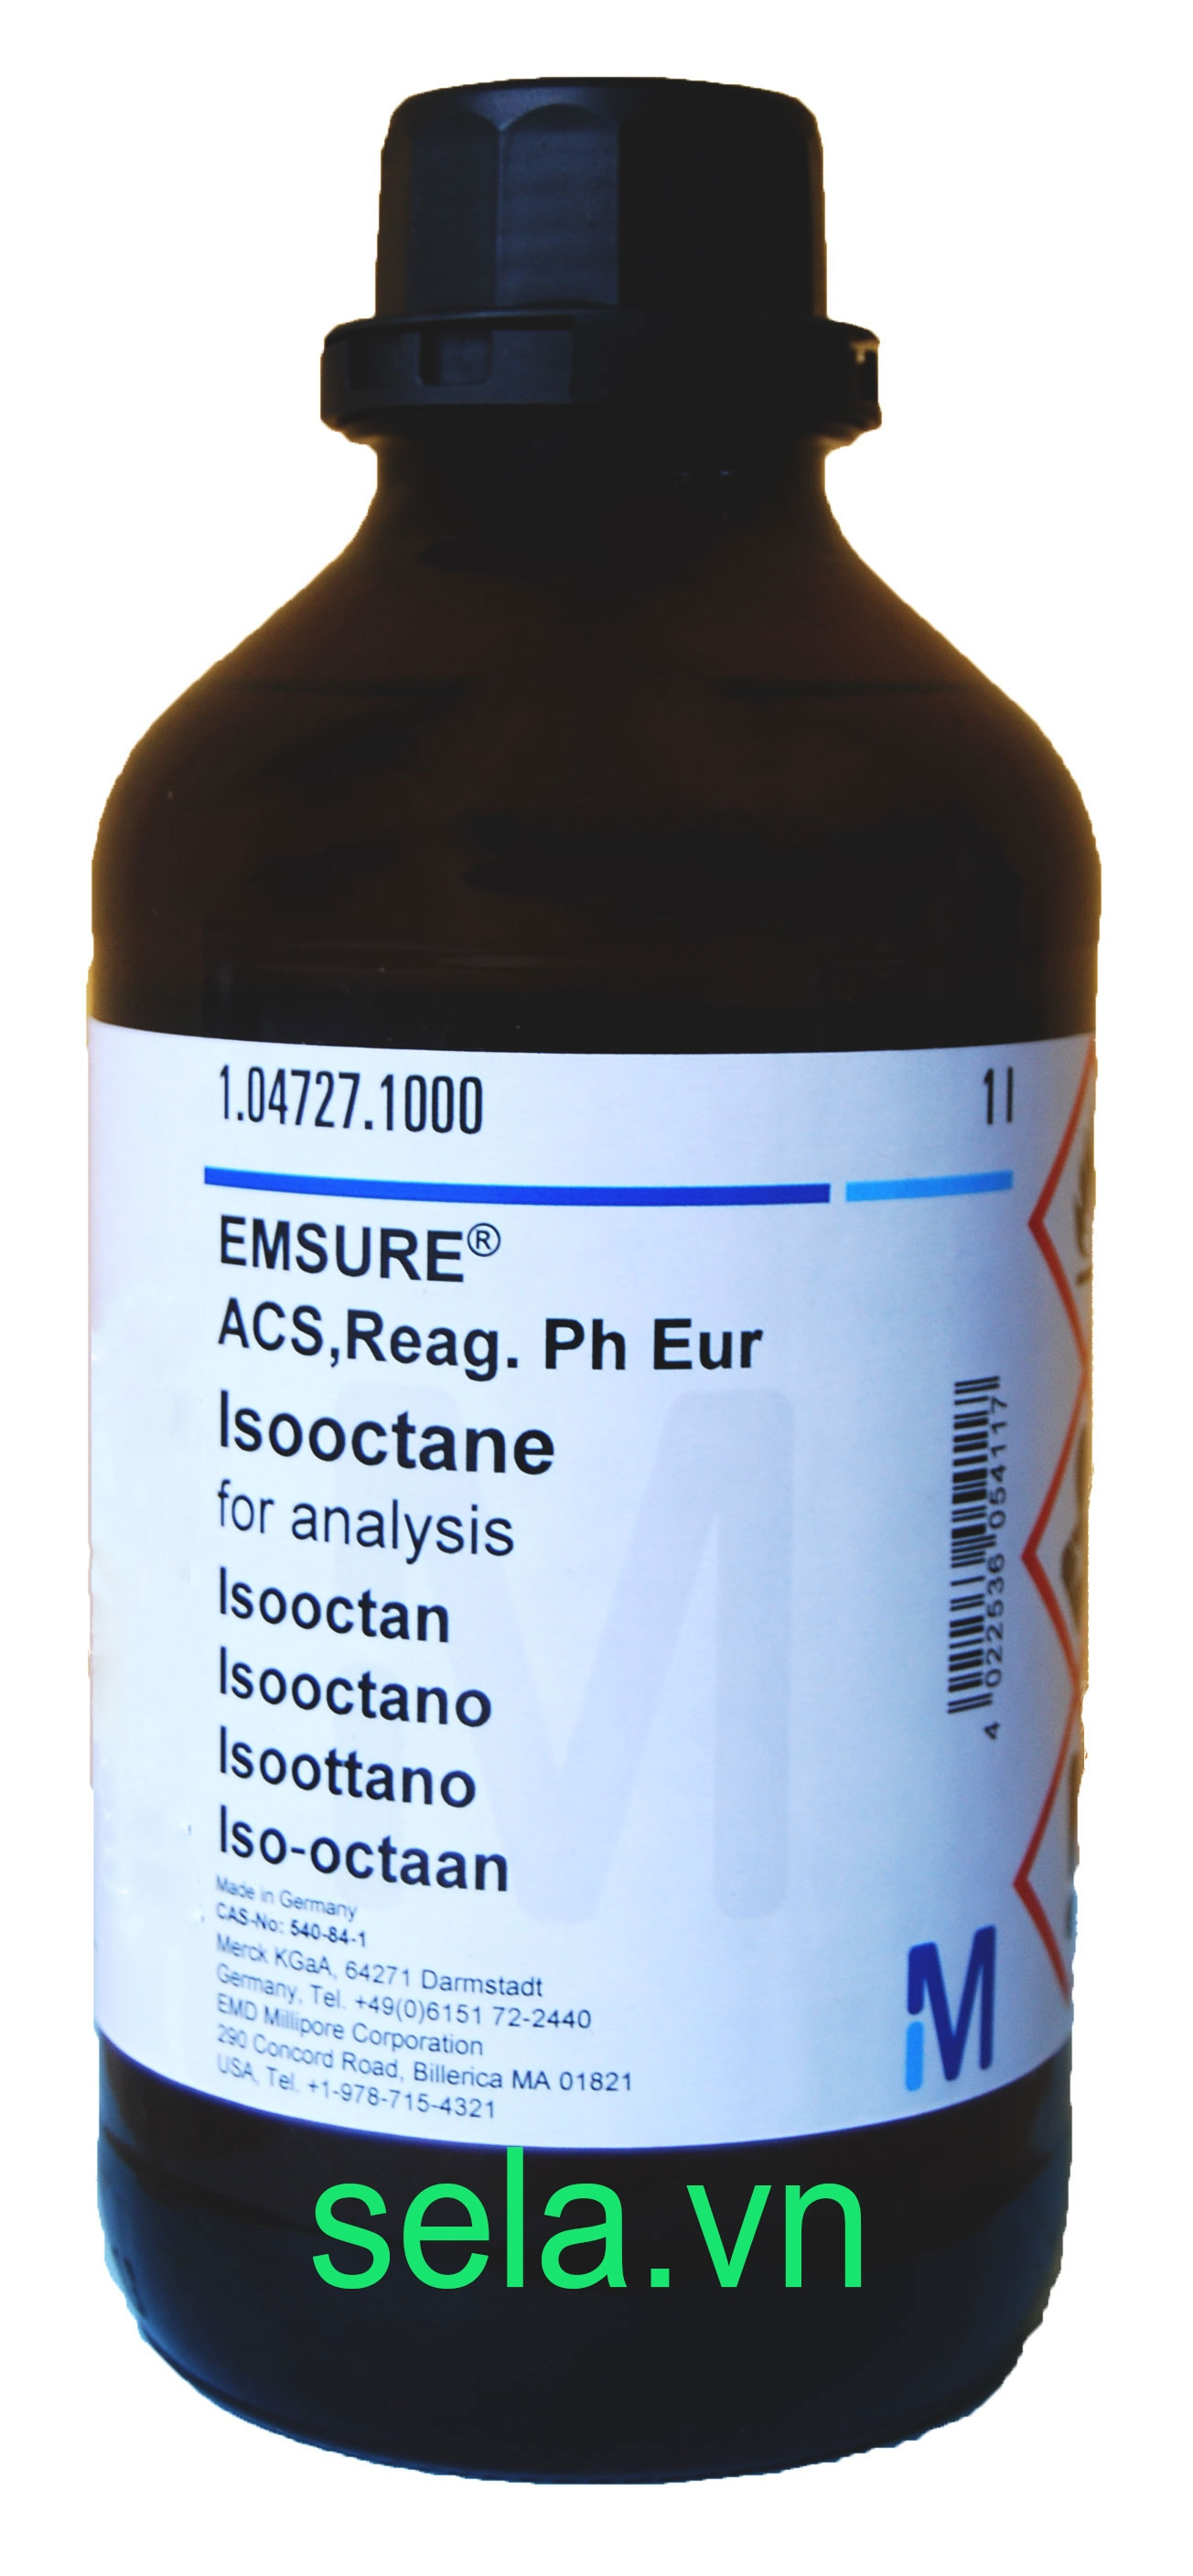 Isooctane for analysis EMSURE® ACS,Reag. Ph Eur